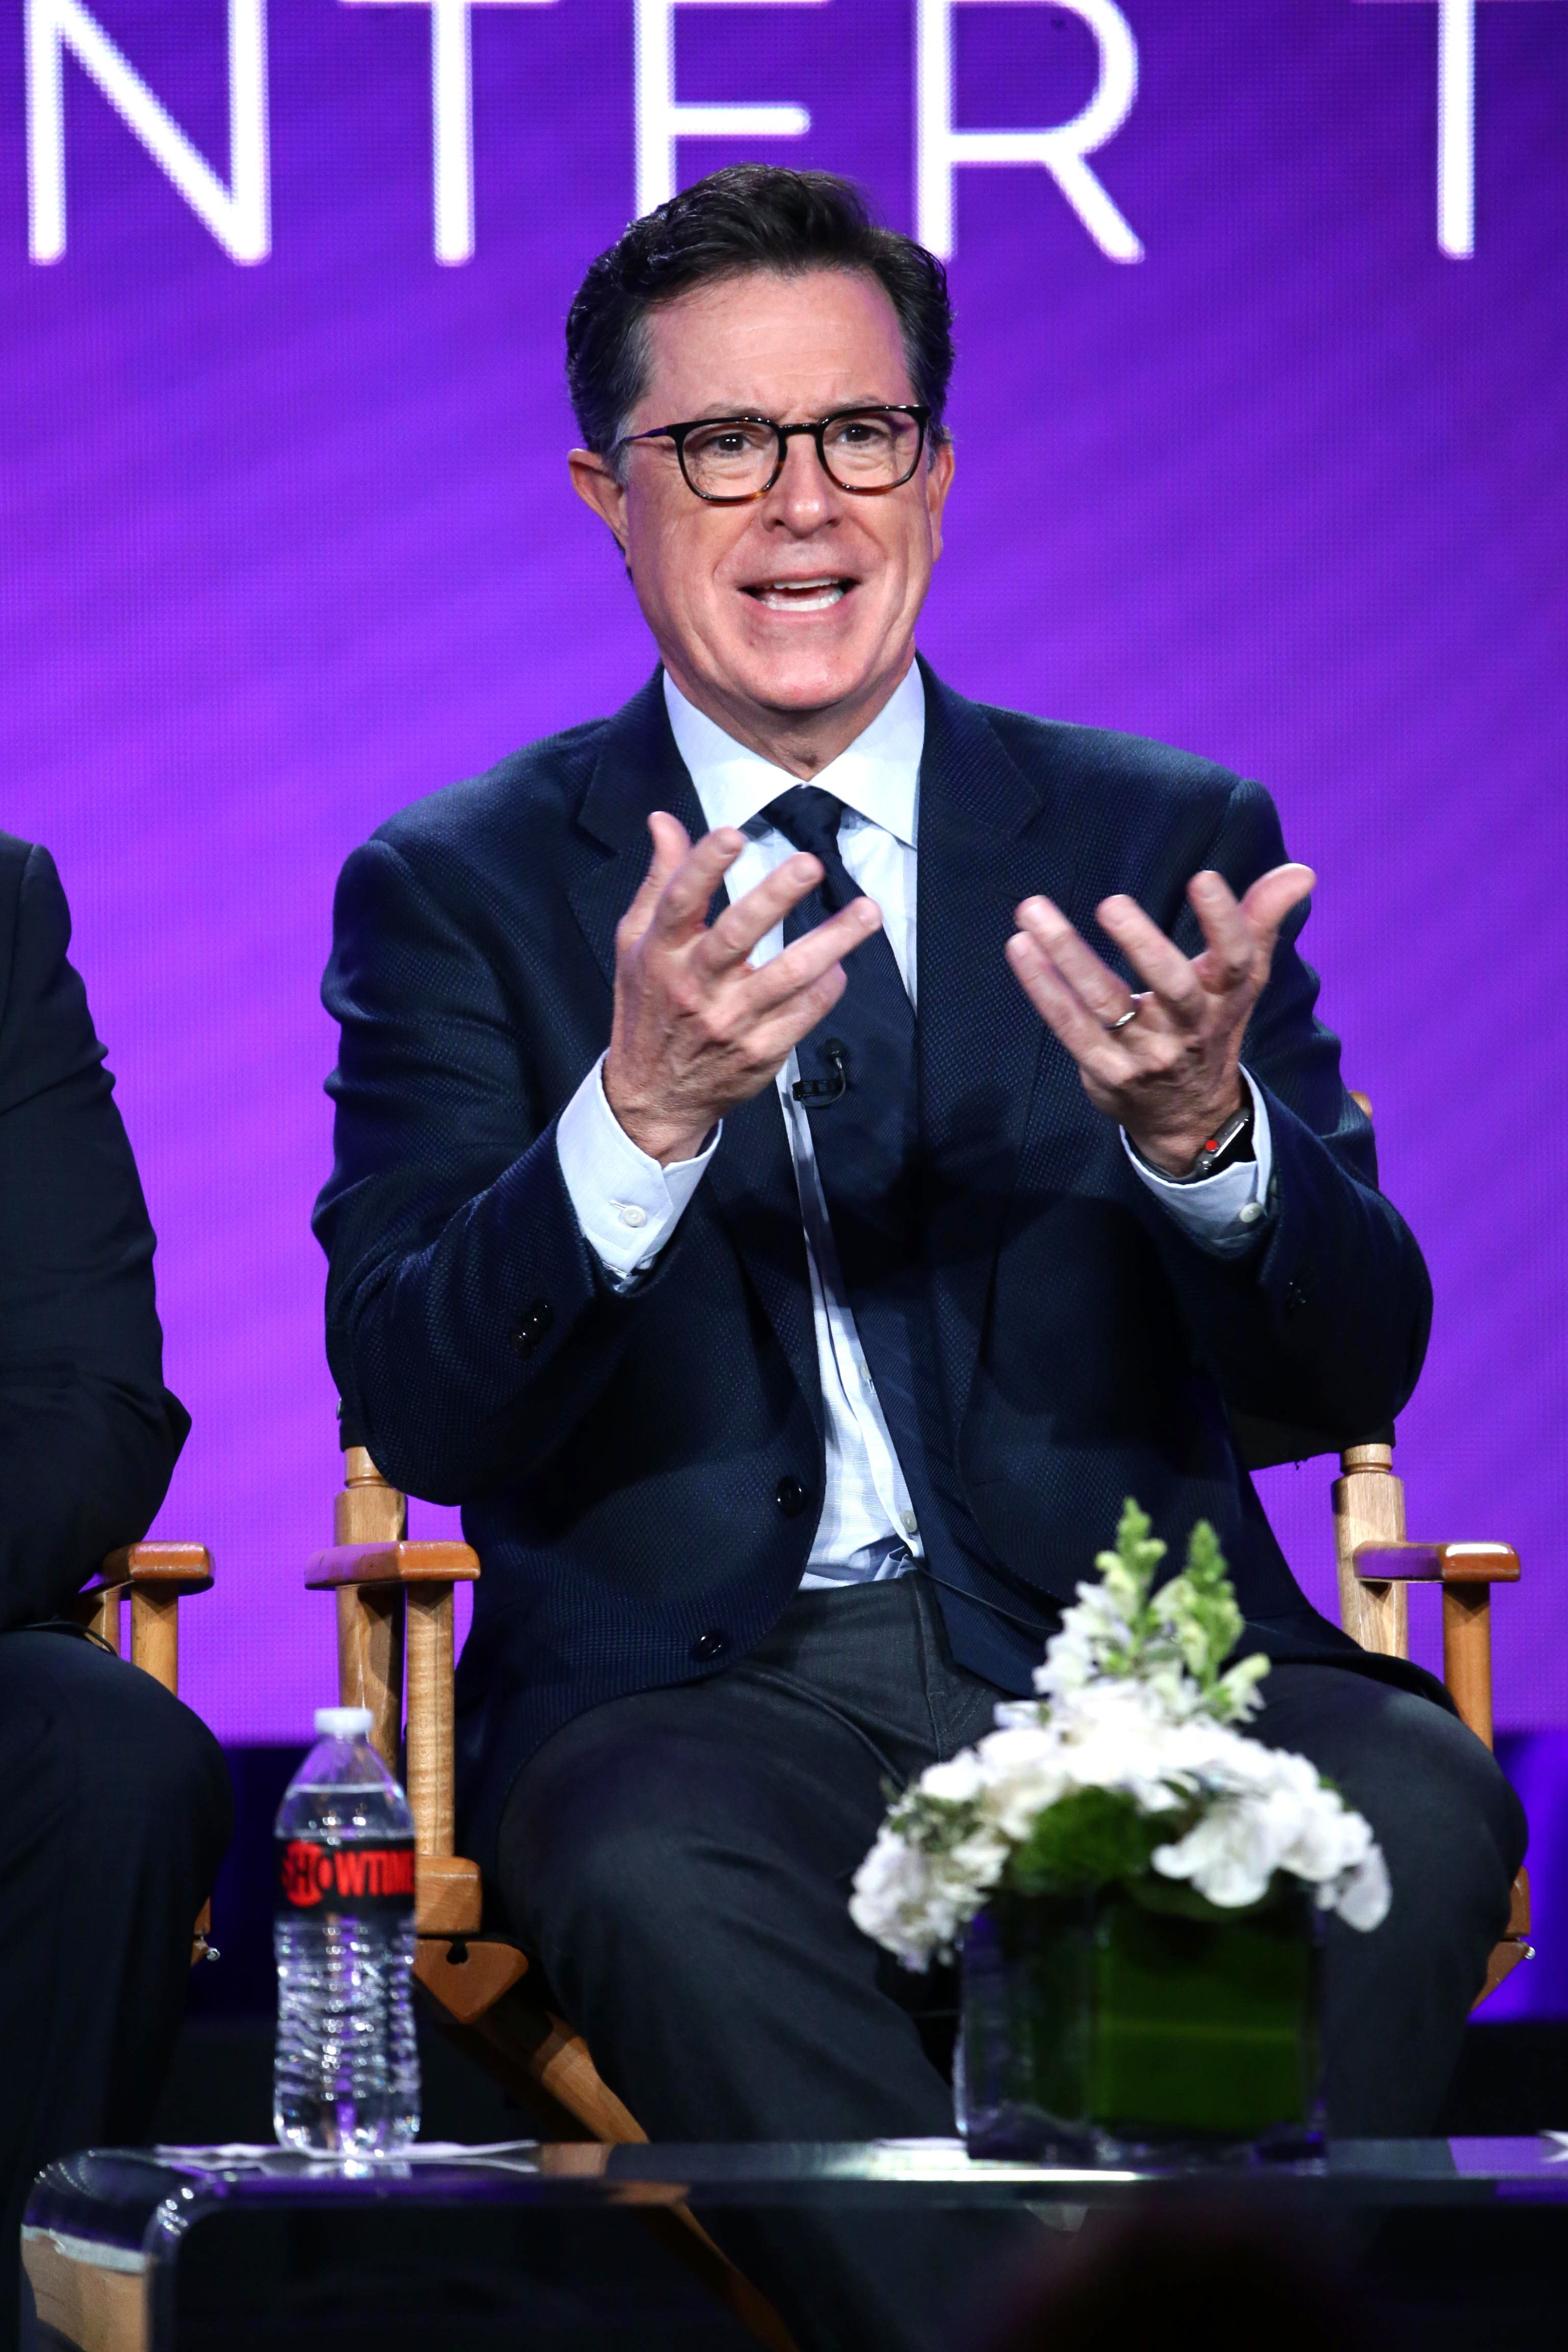 """Stephen Colbert speaks at the """"Our Cartoon President"""" Panel at Showtime TCA Winter Press Tour 2018 in Los Angeles on Jan. 6, 2018."""